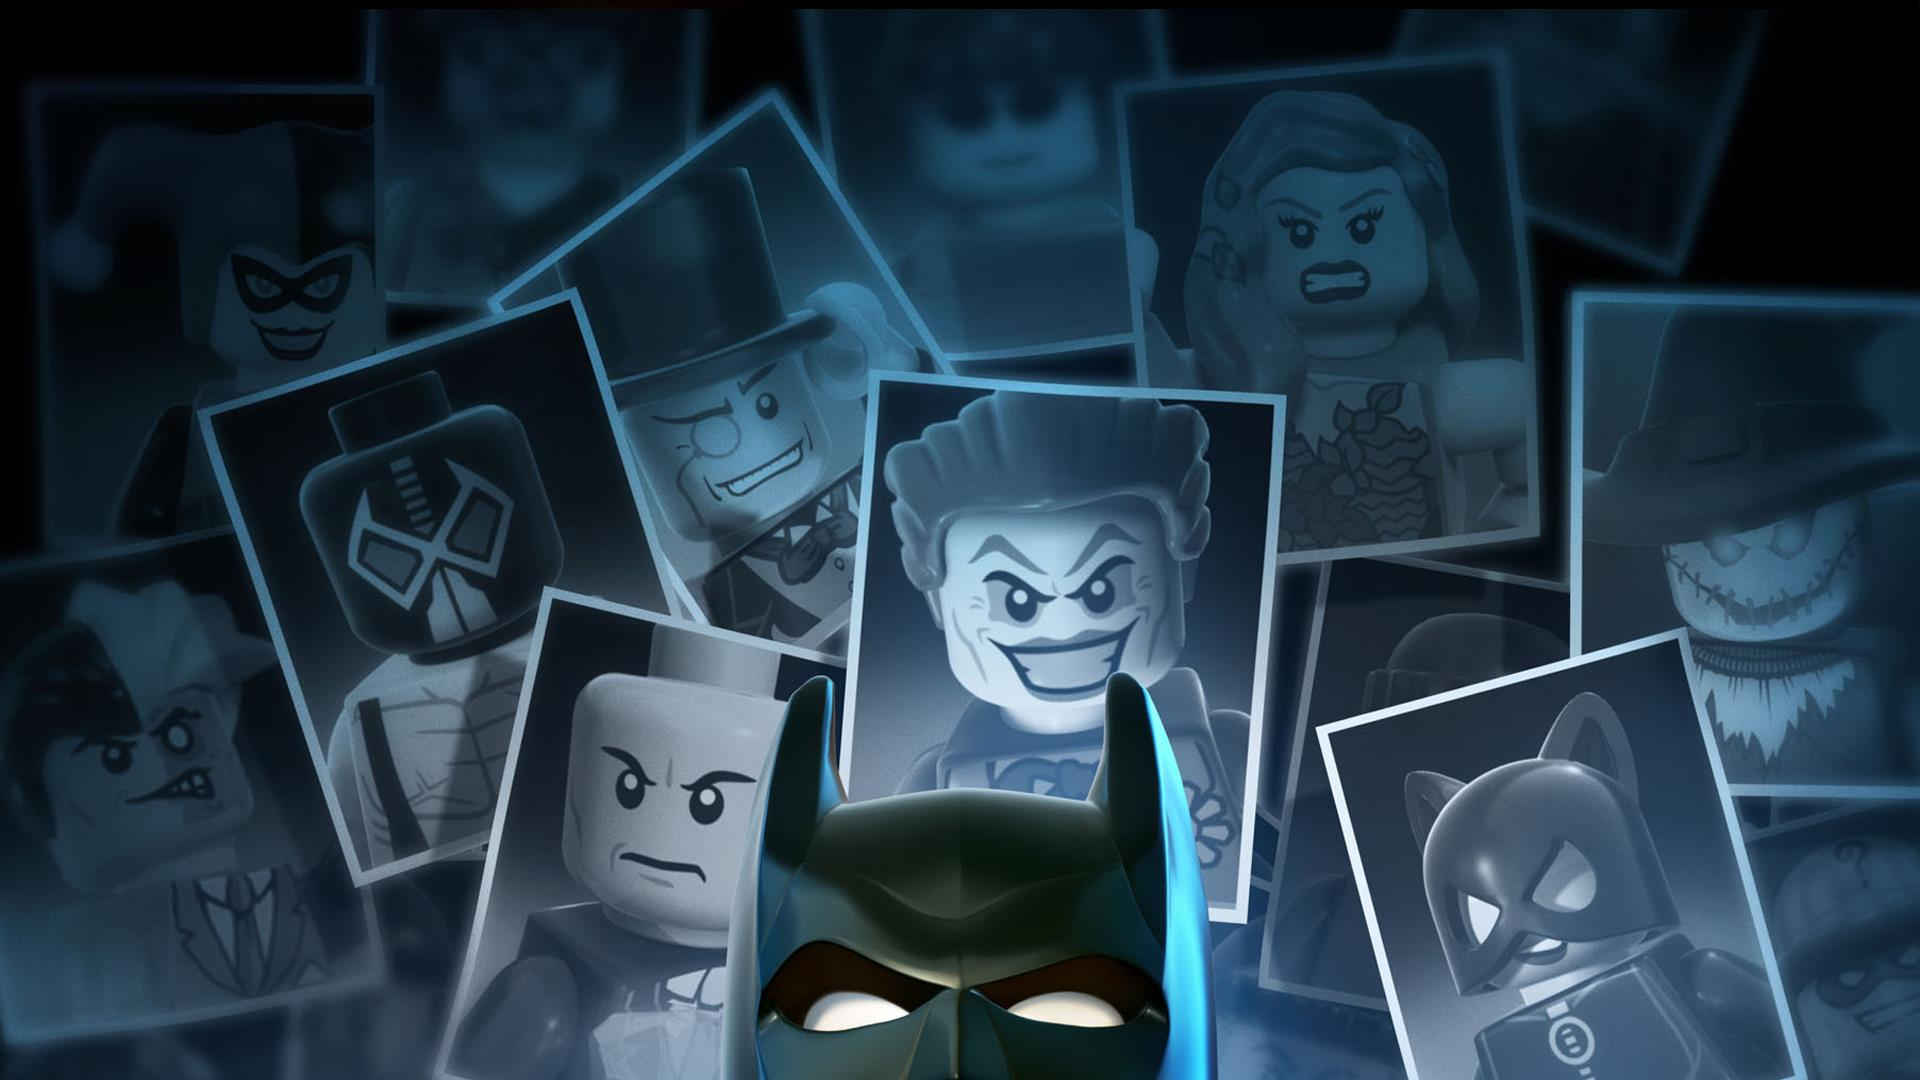 Lego Batman Wallpaper Hd 1920x1080